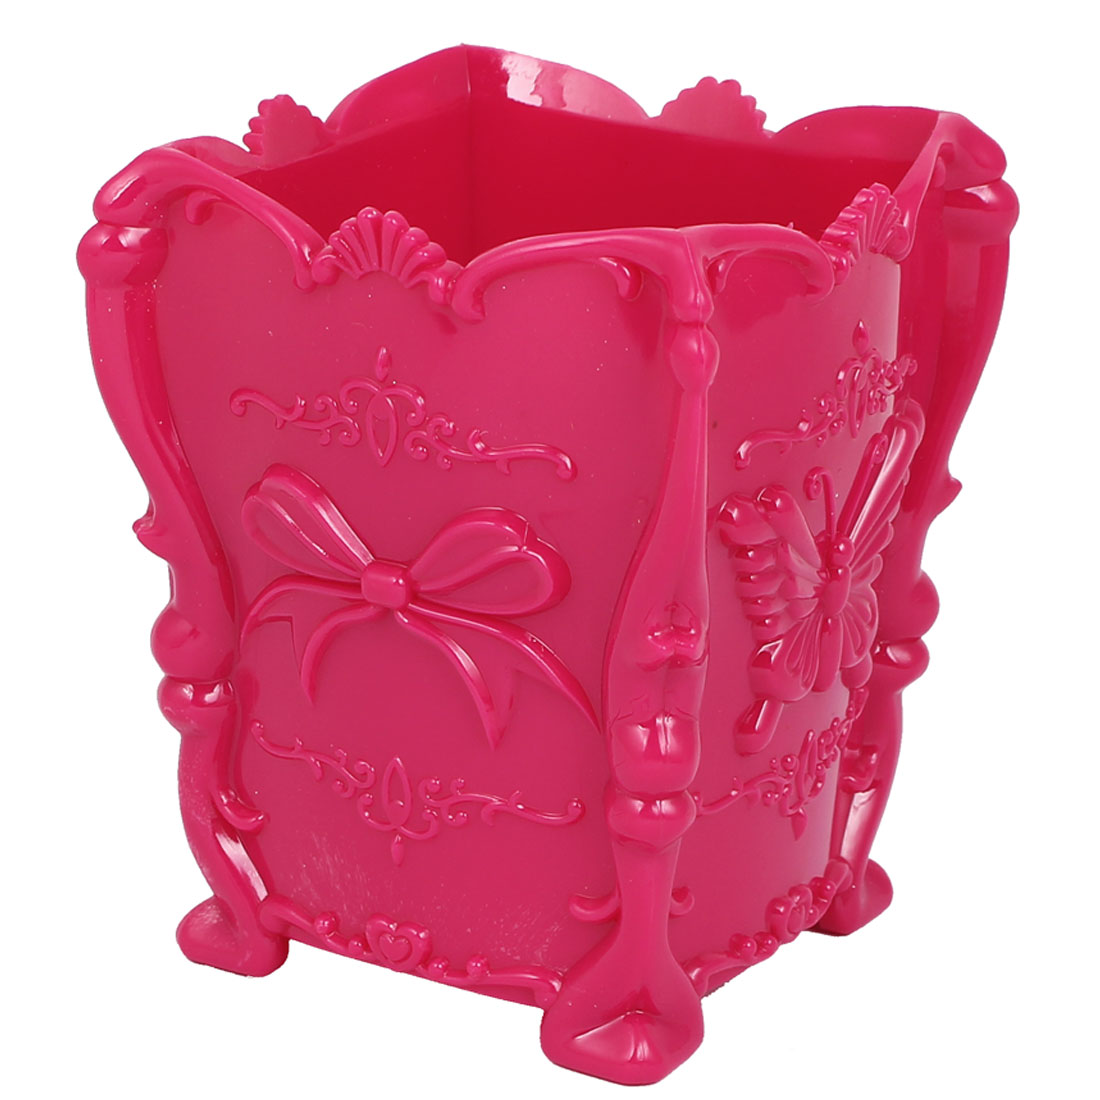 Plastic Butterfly Bowtie Pattern Cosmetic Makeup Jewelry Storage Box Case Holder Fuchsia